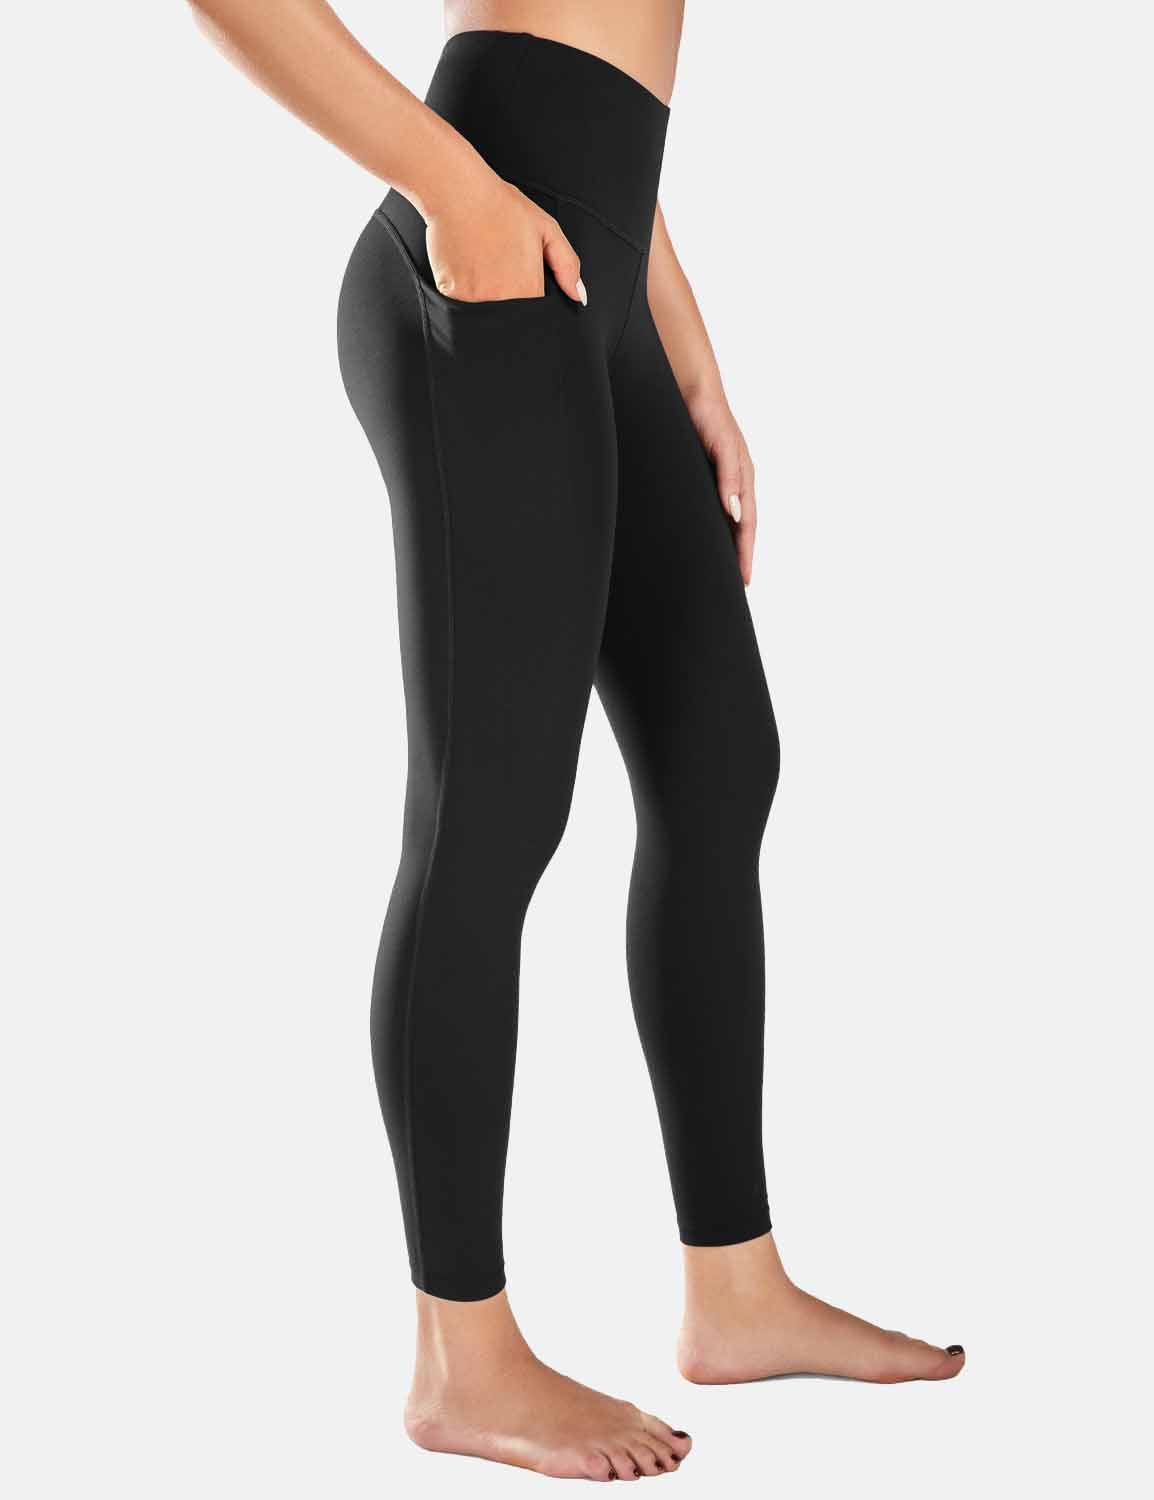 7/8 High Waisted Soft Pockets Leggings